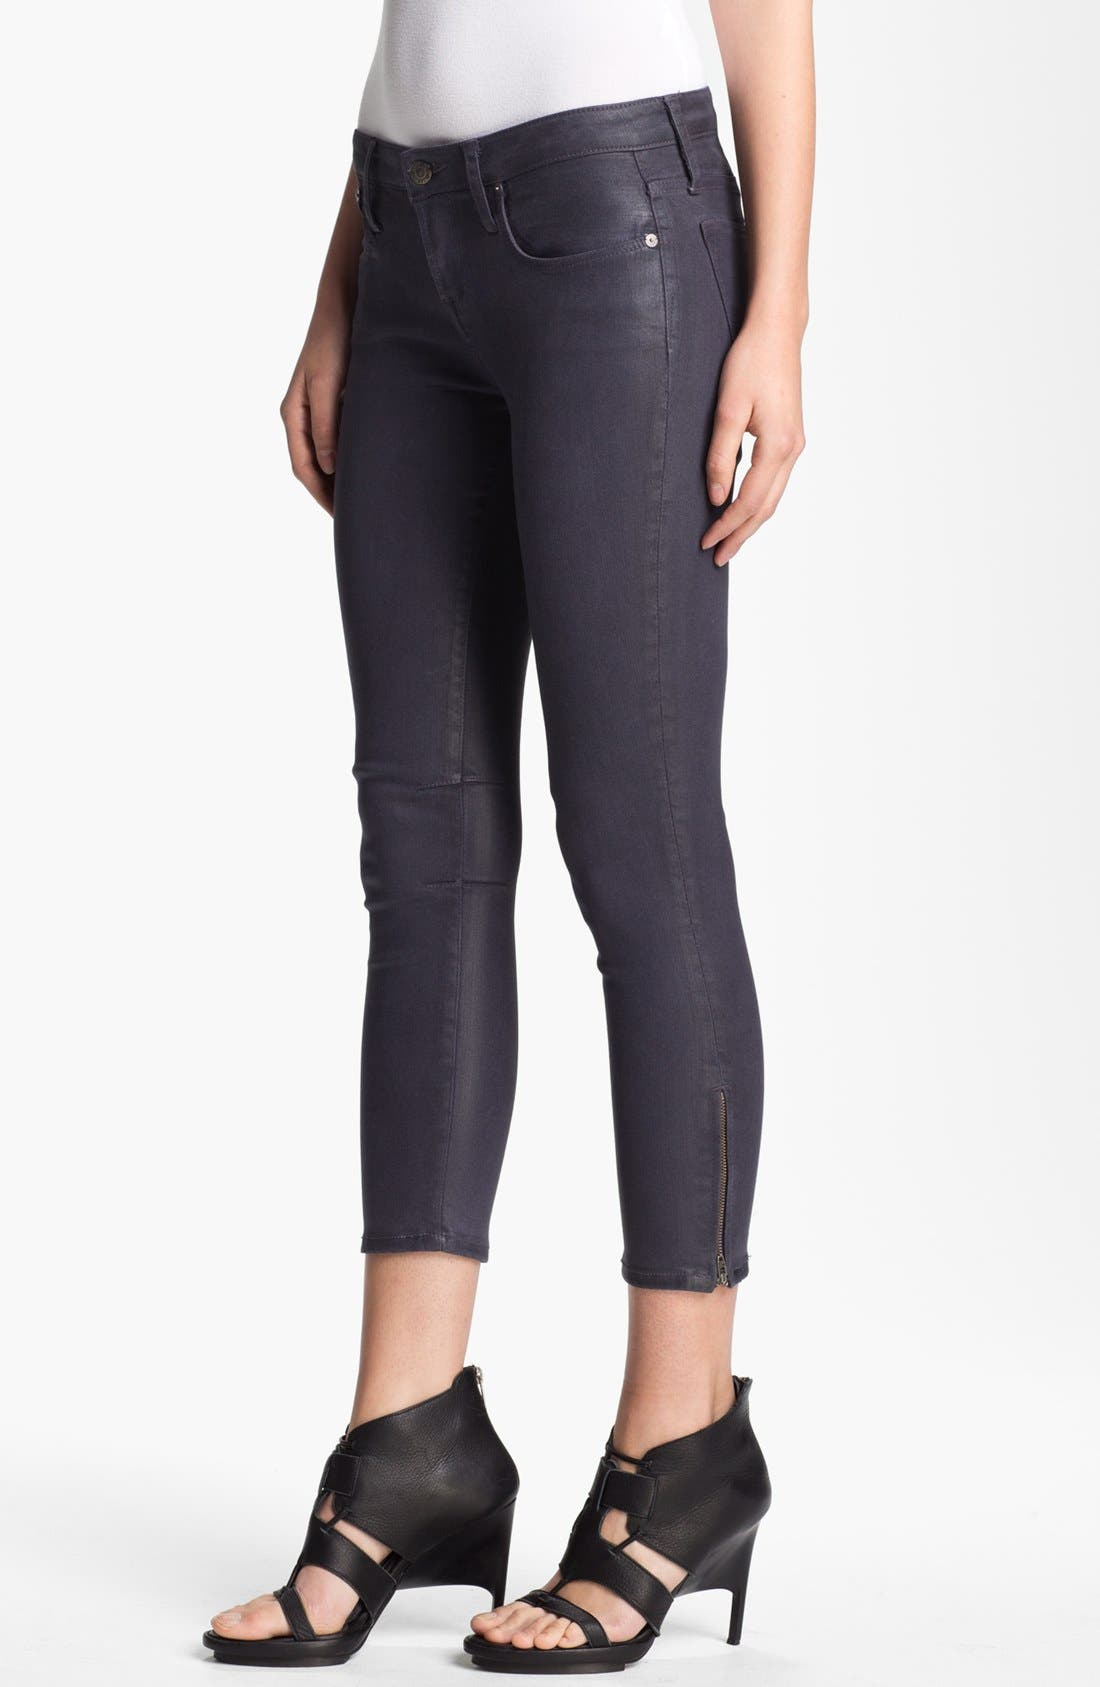 Alternate Image 1 Selected - HELMUT Helmut Lang 'High Gloss Halo' Skinny Crop Jeans